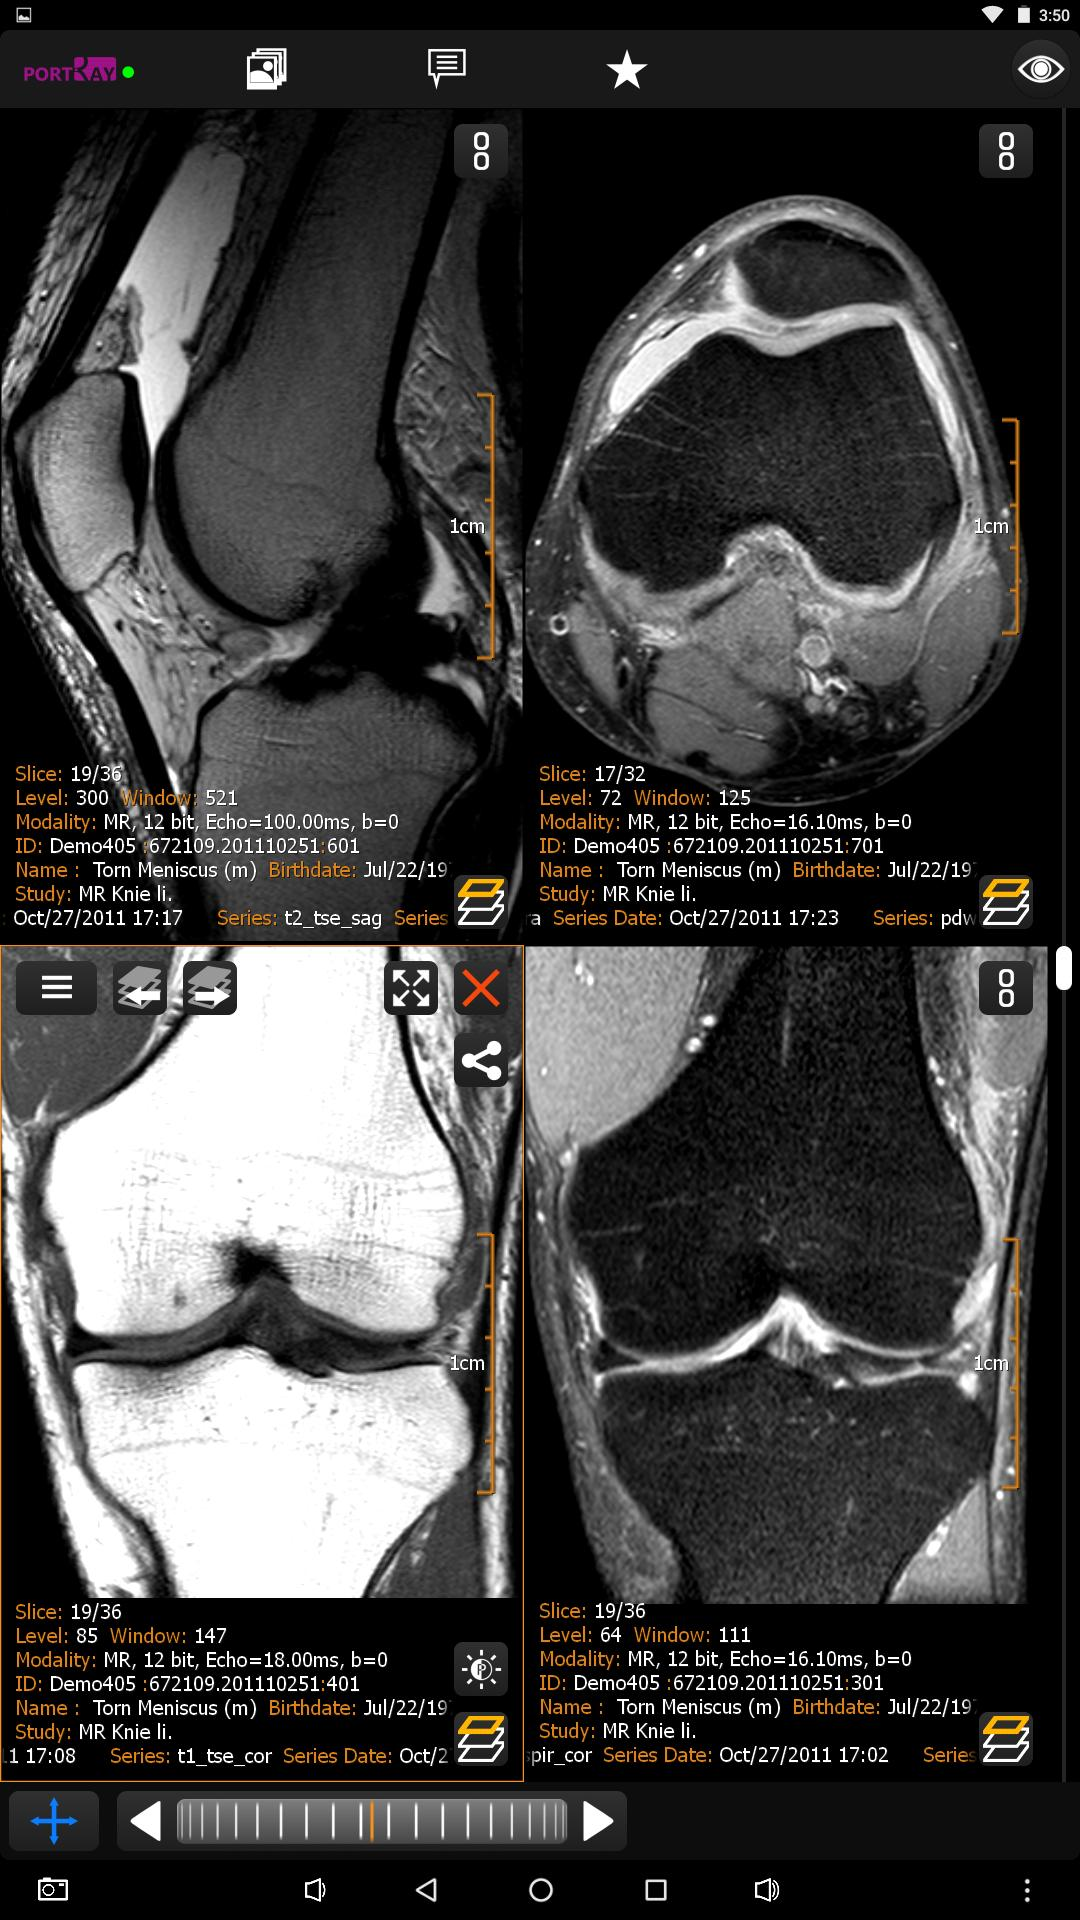 PORT-RAY: DICOM Viewer for Android for Android - APK Download